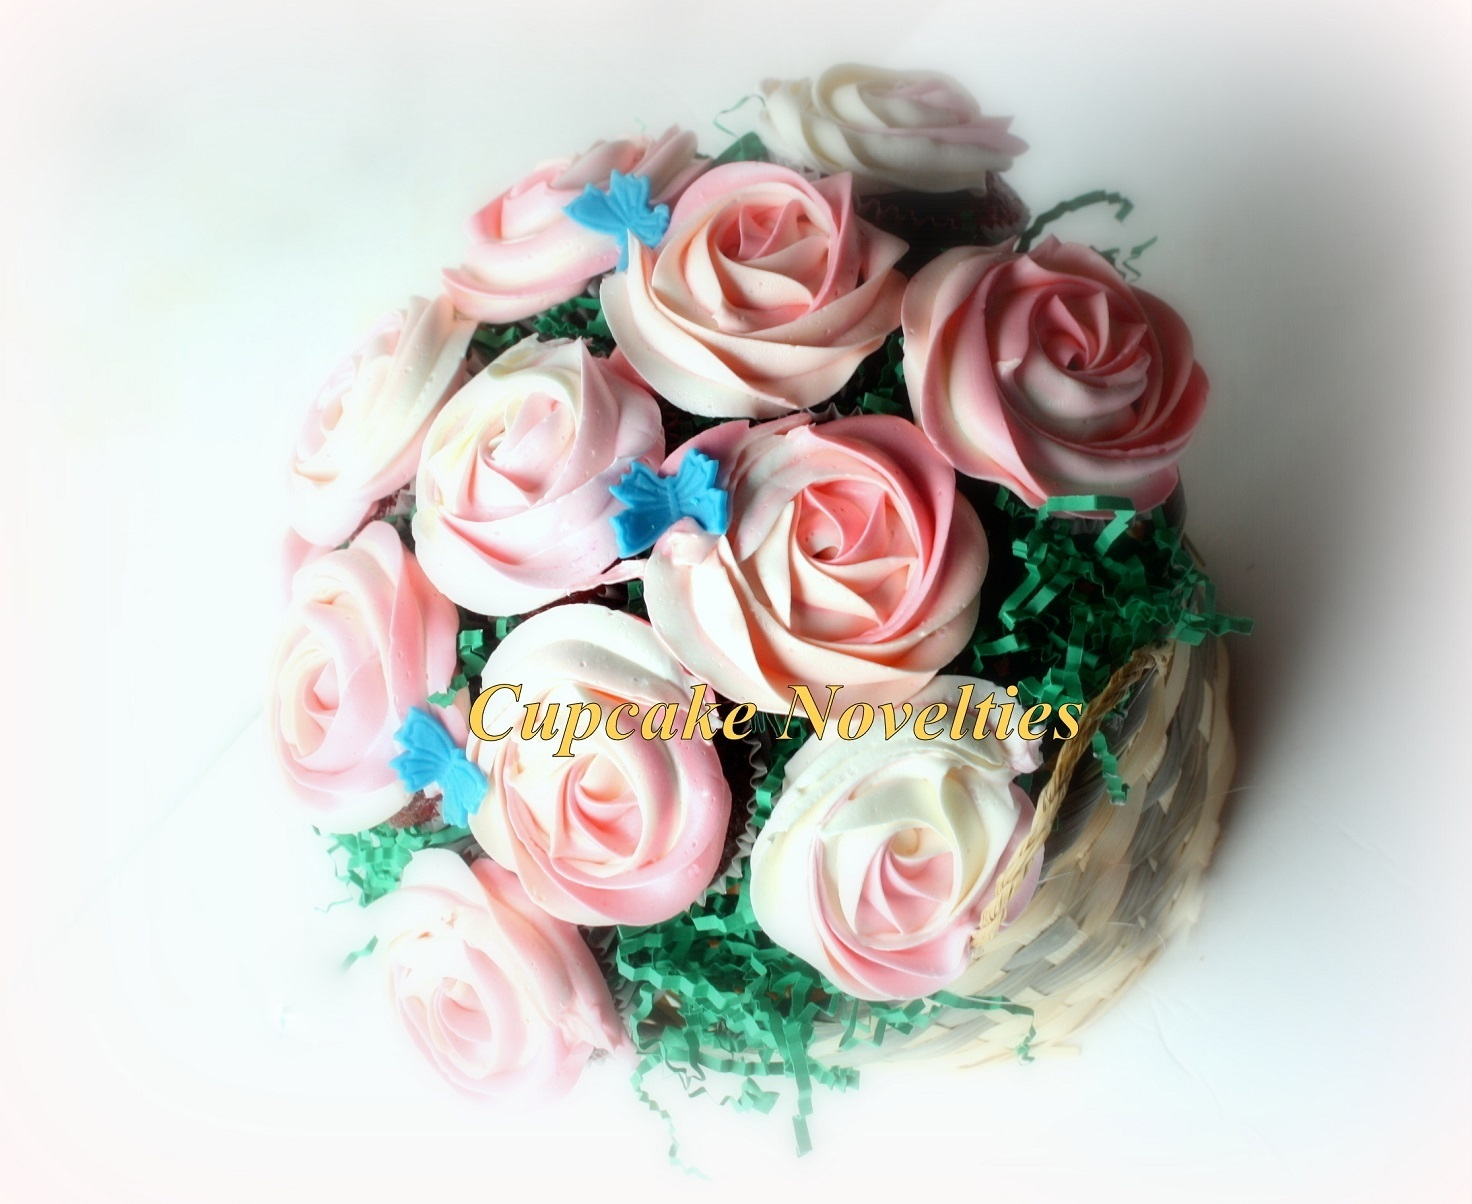 Shaded Pink & White Roses Cupcake Bouquet with blue butterflies!